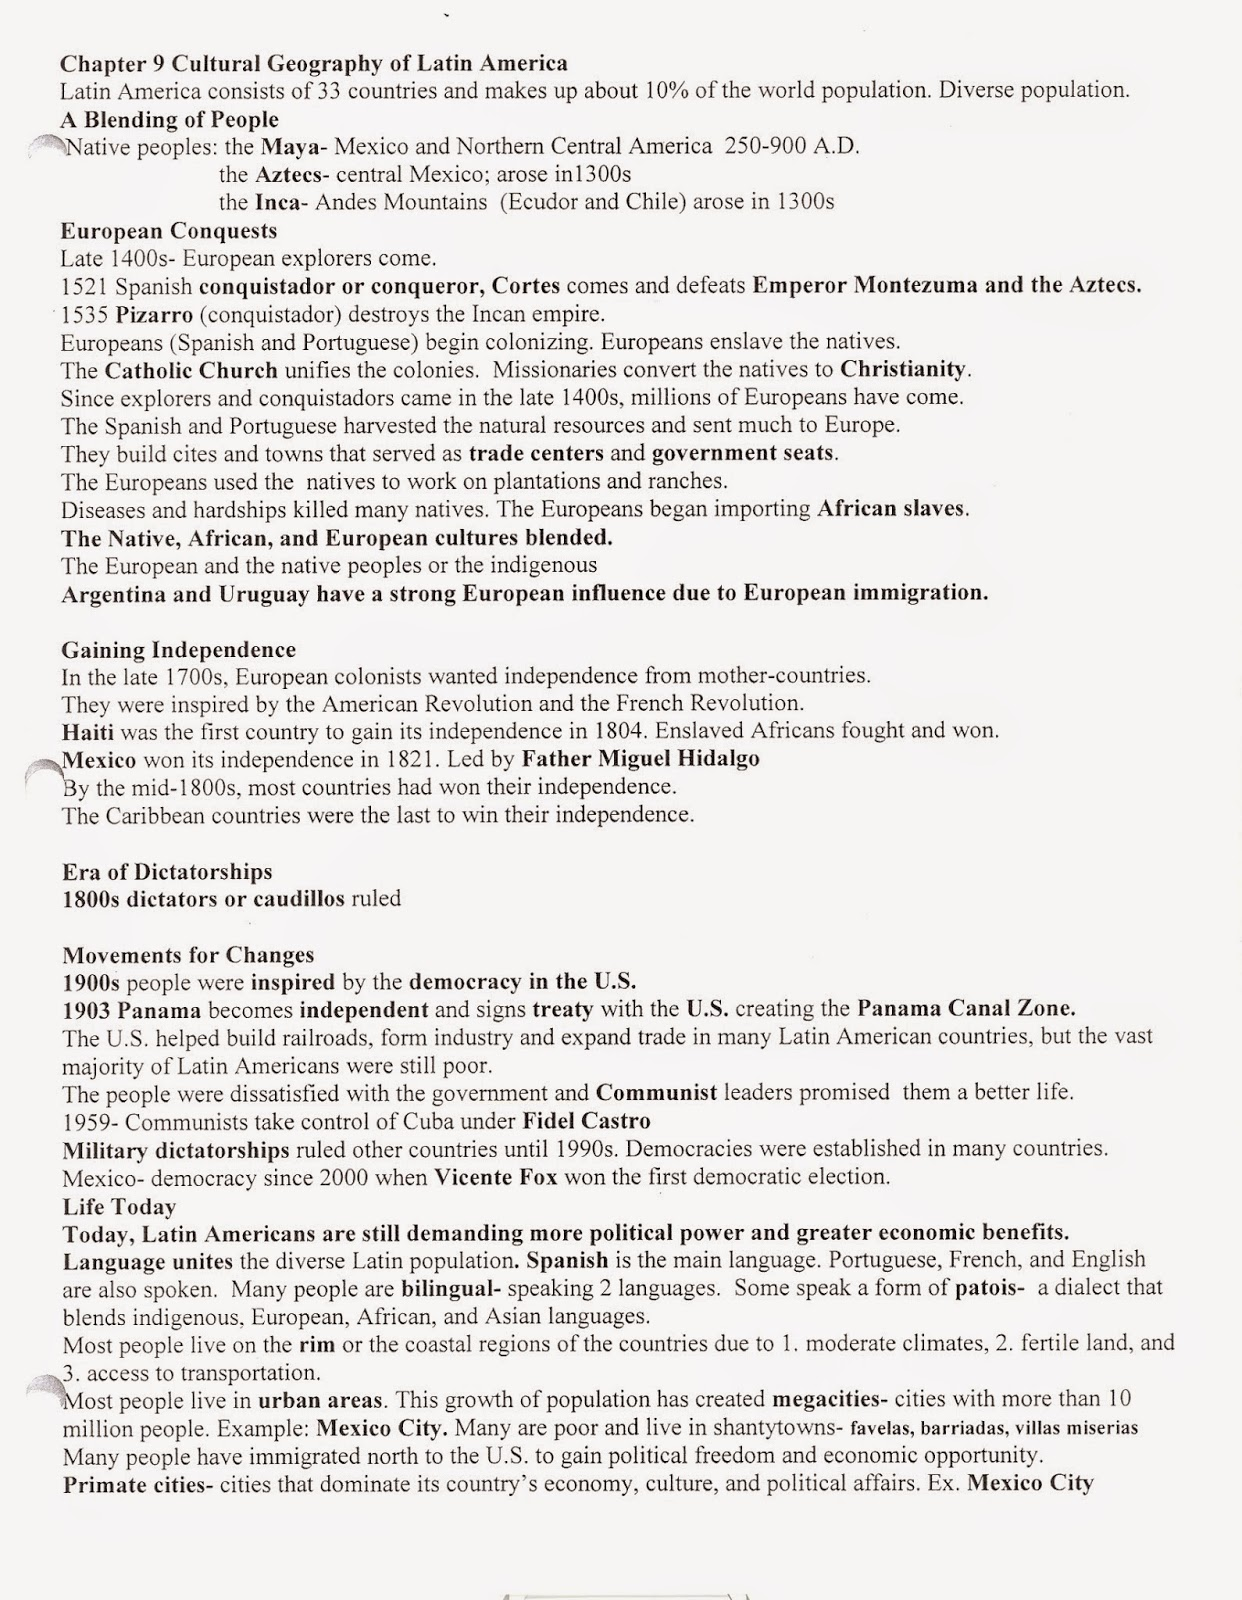 mr e s world geography page world geography chapter 9 the rh acewg blogspot com Suction Line Ch 9 Ch.9 KCAL